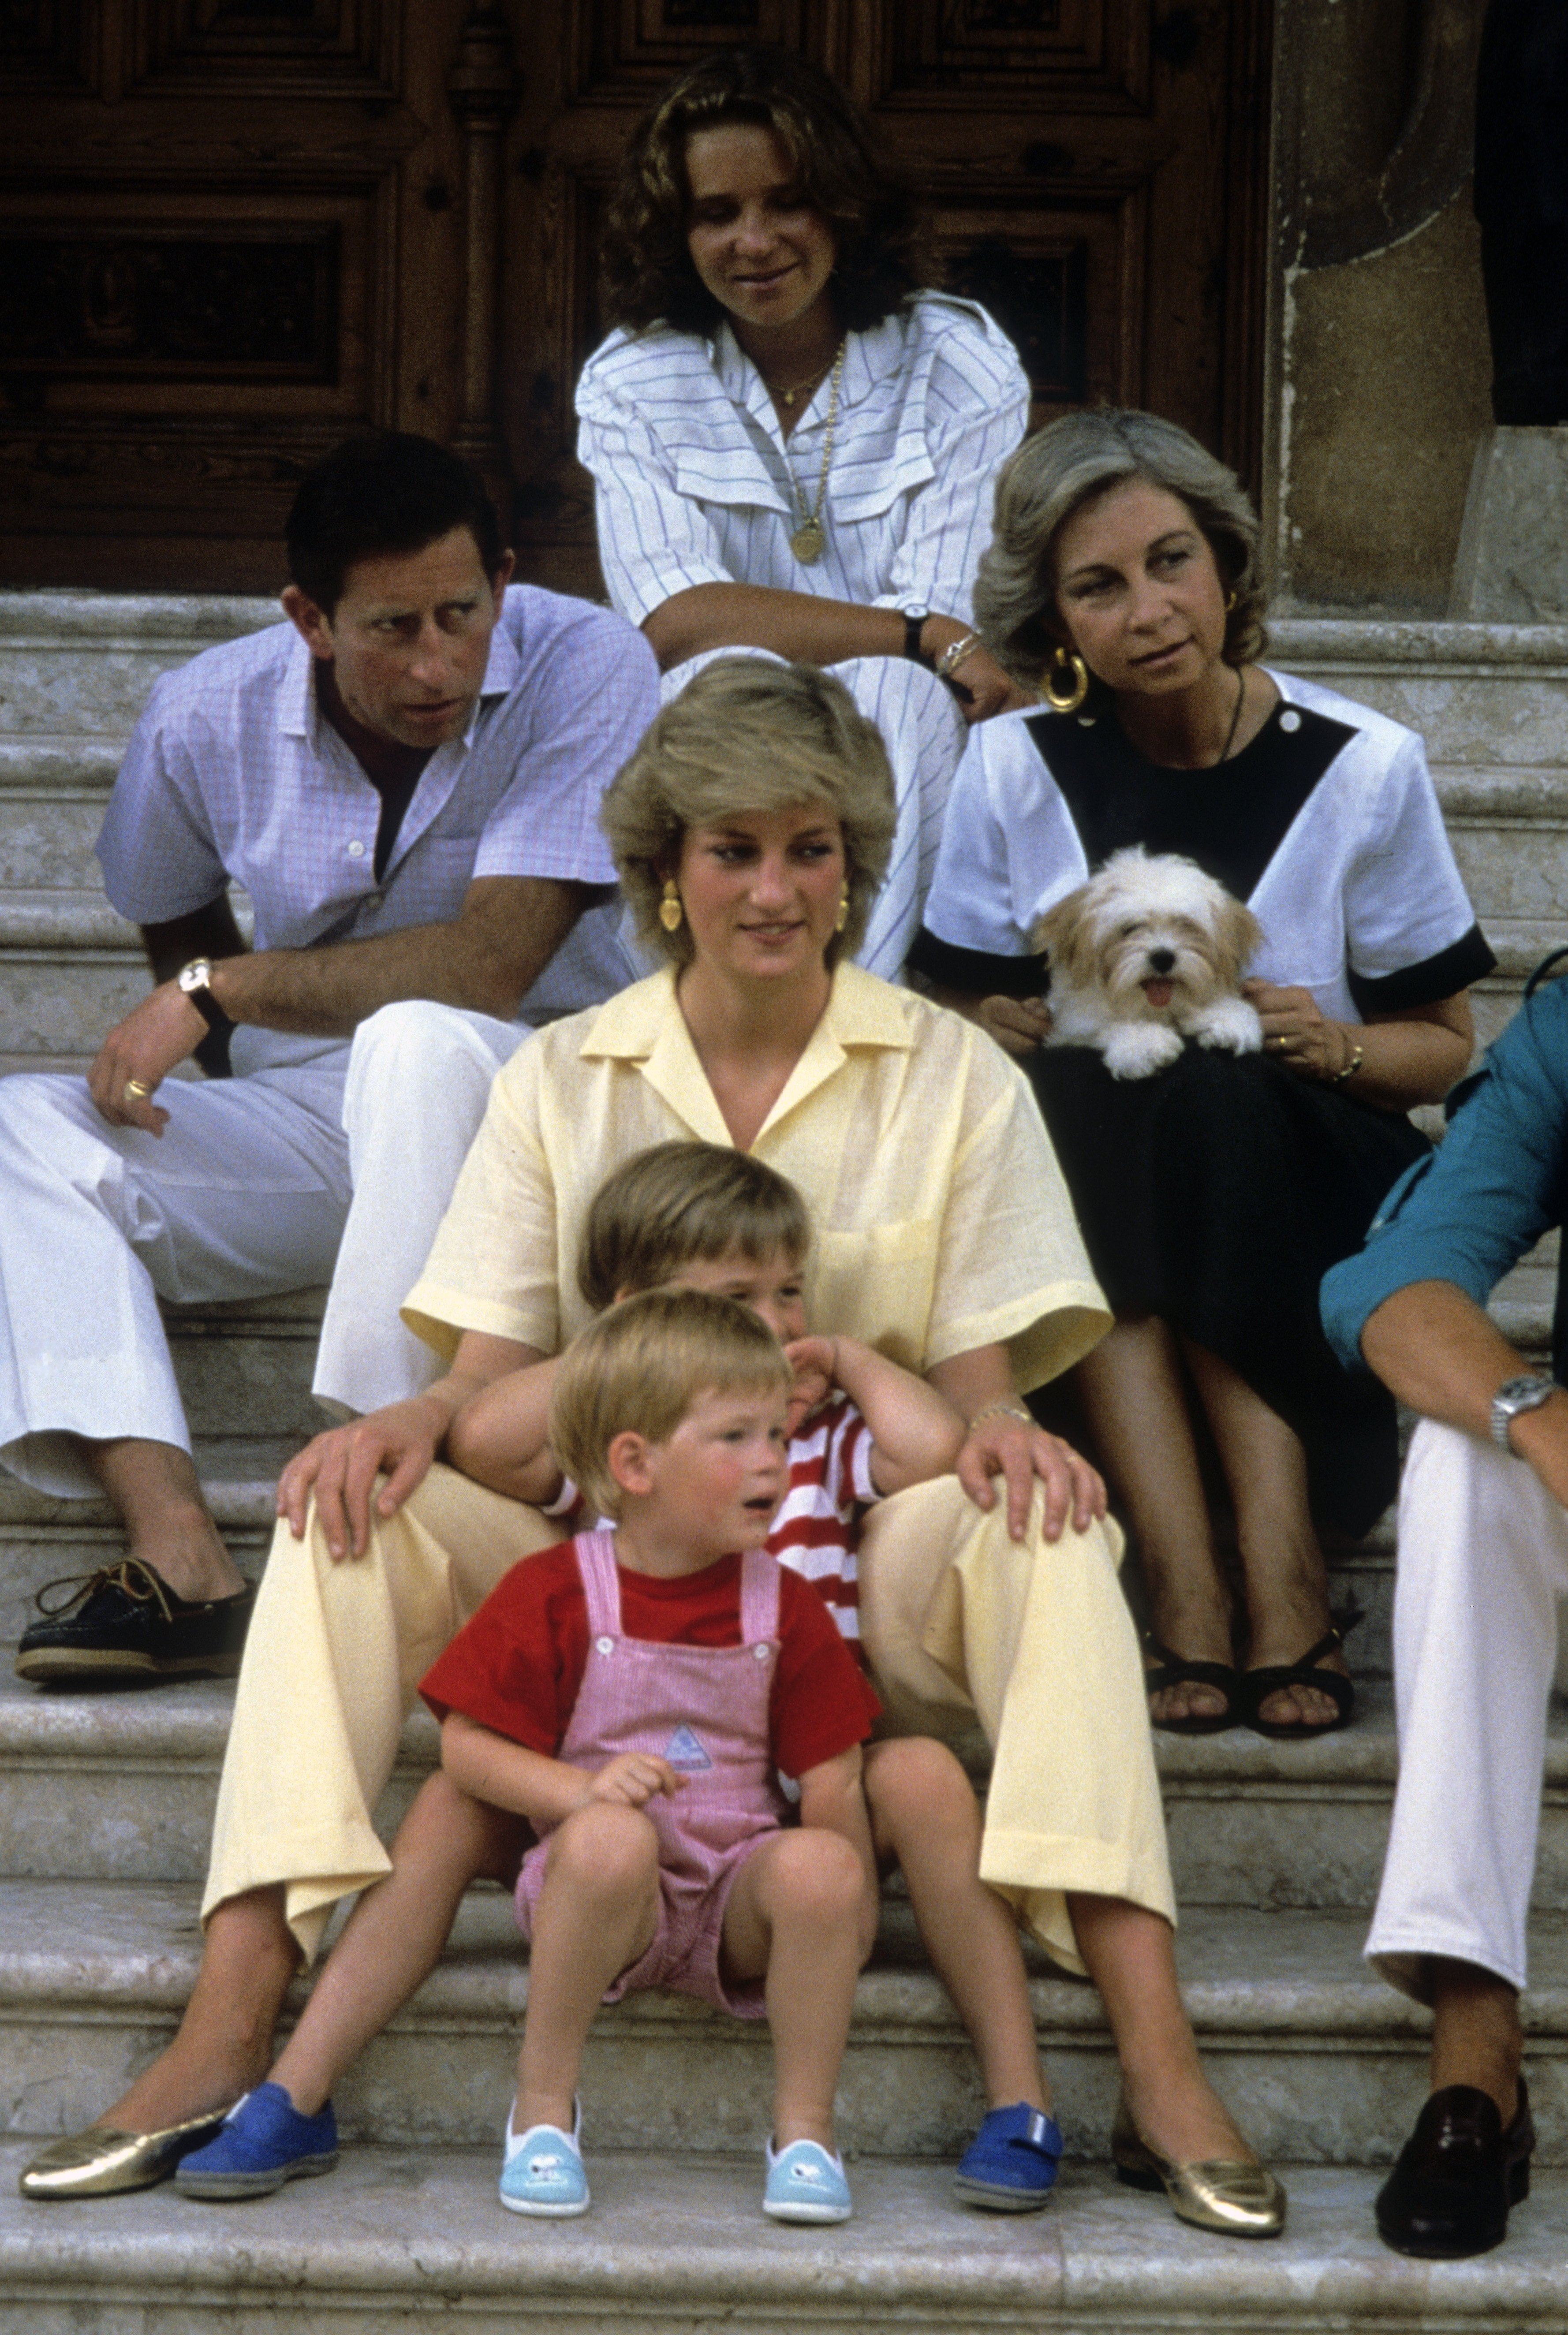 Image Credits: Getty Images | Princess Diana was always a hands-on mother with her own fashion sense